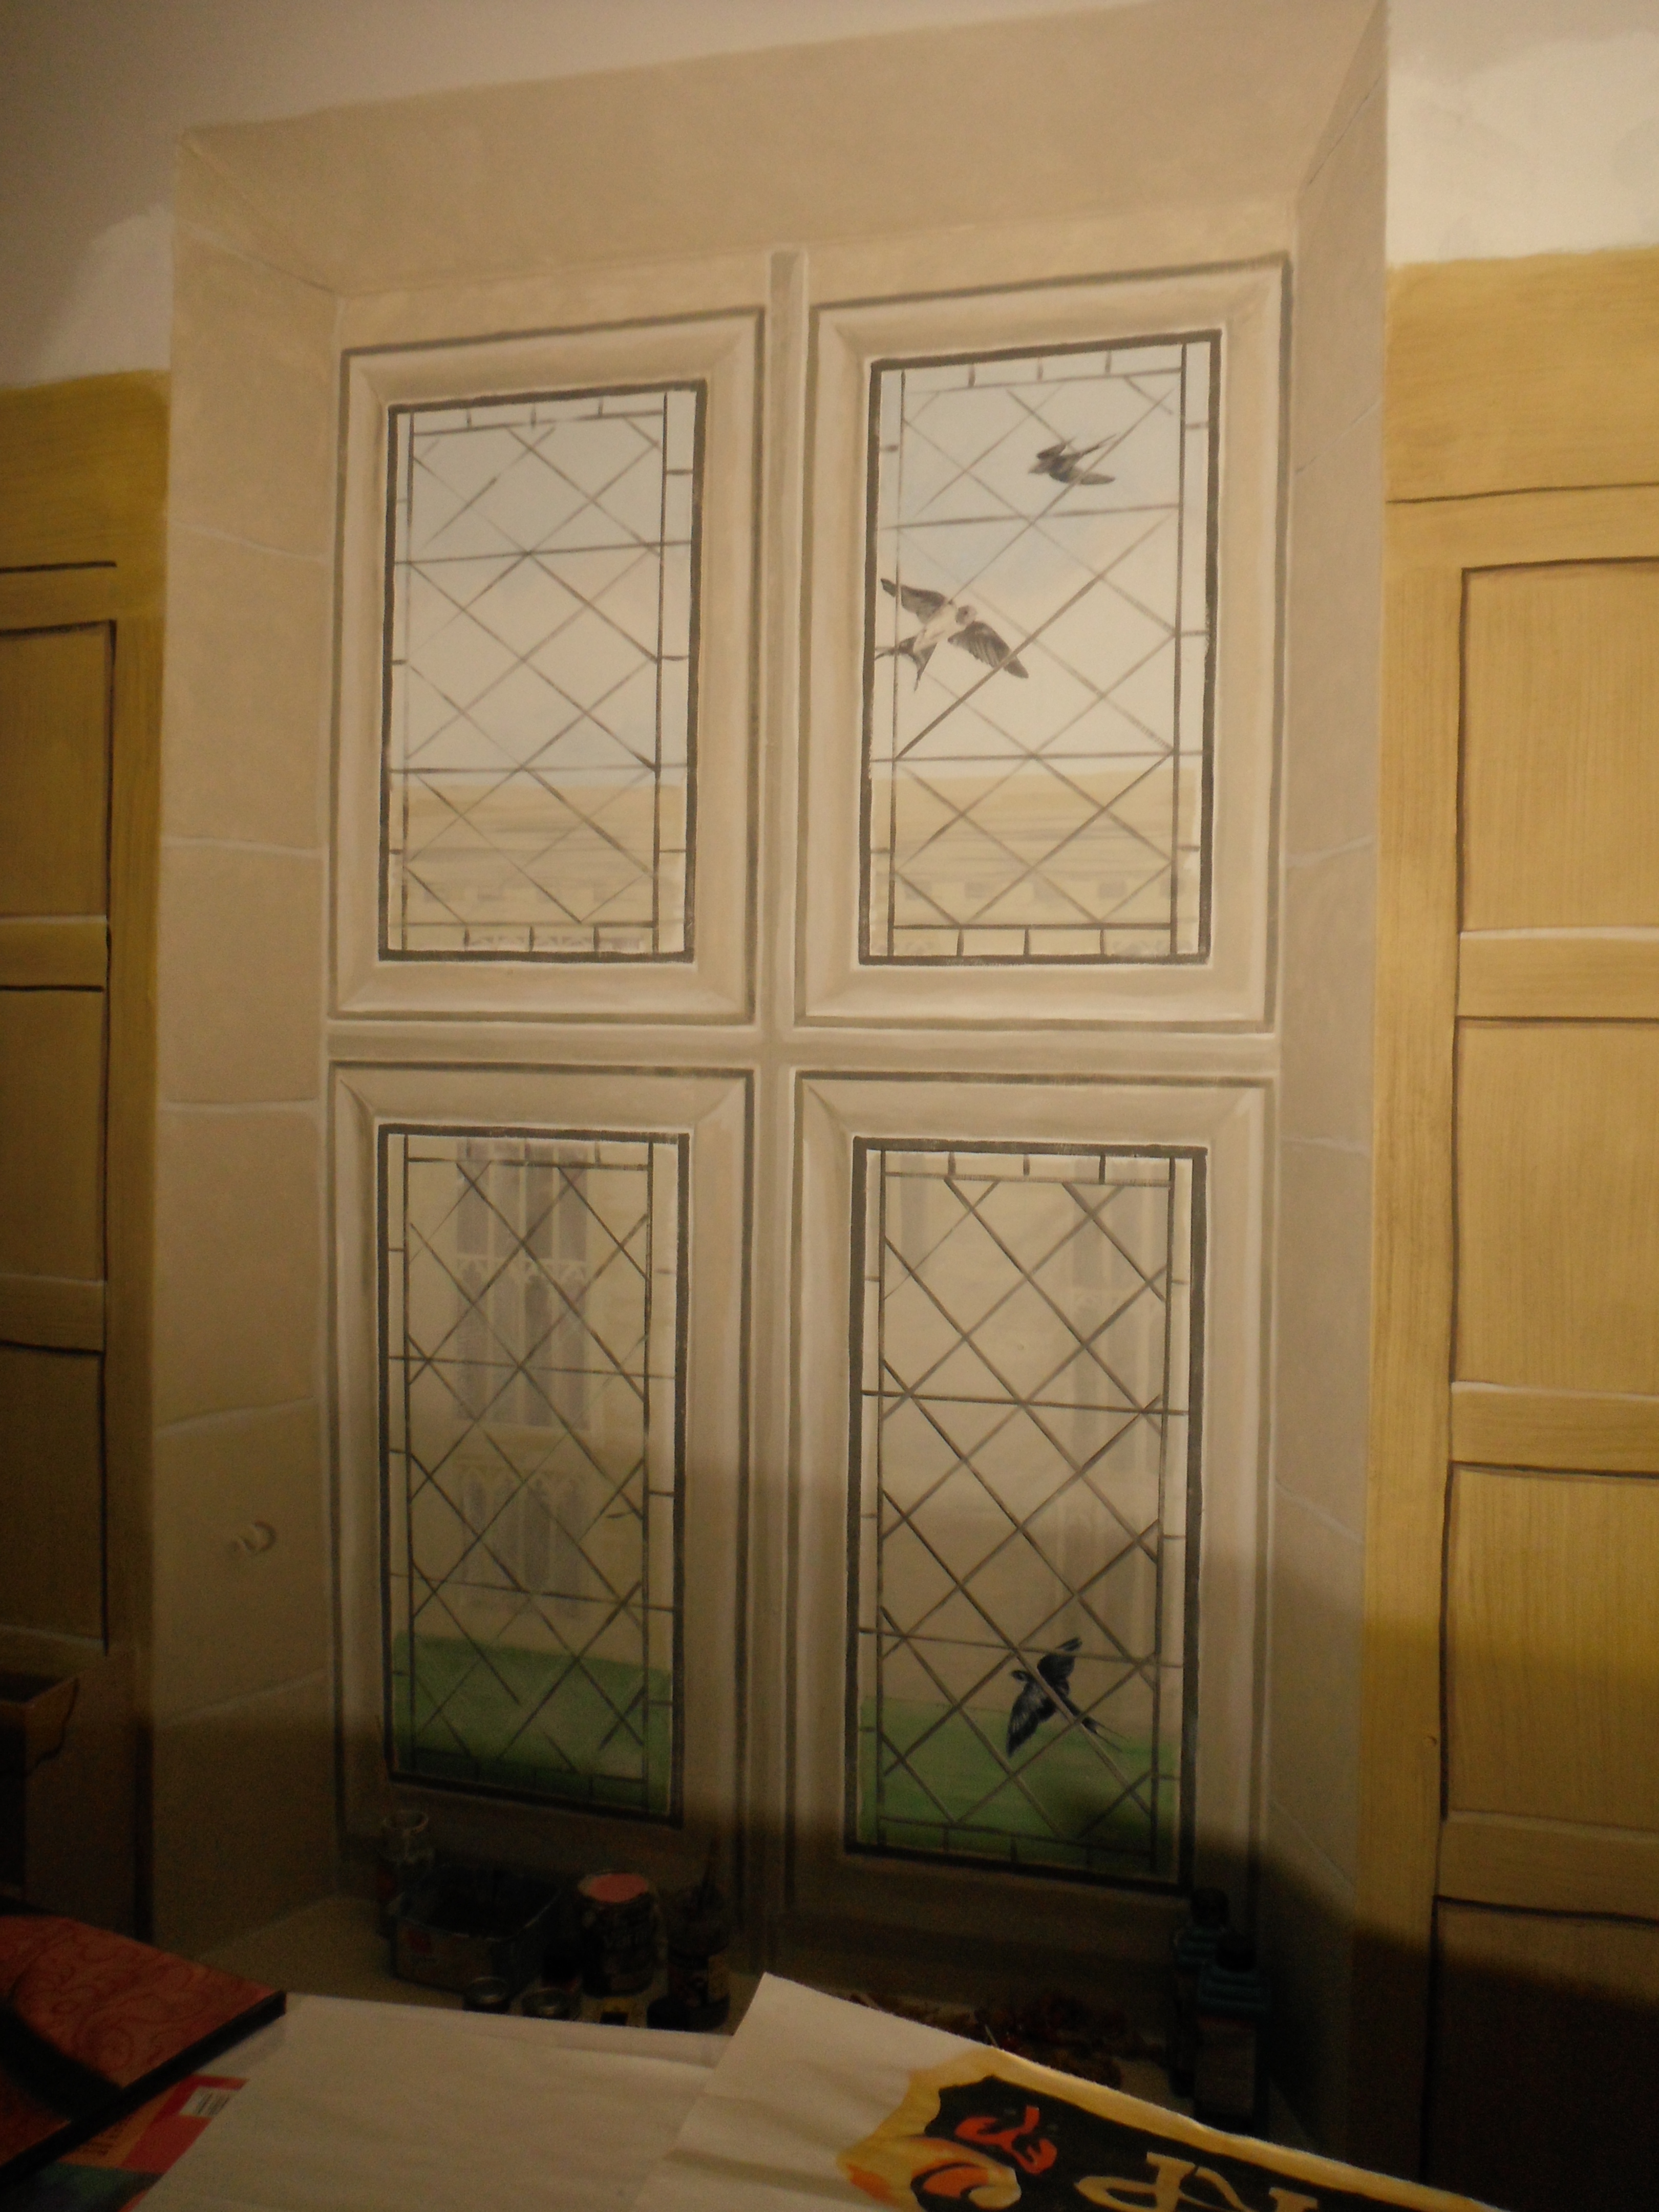 Trompe l'oeil- old leaded window with fake stone surround. Looking out onto a courtyar; Window with swallows flying past.